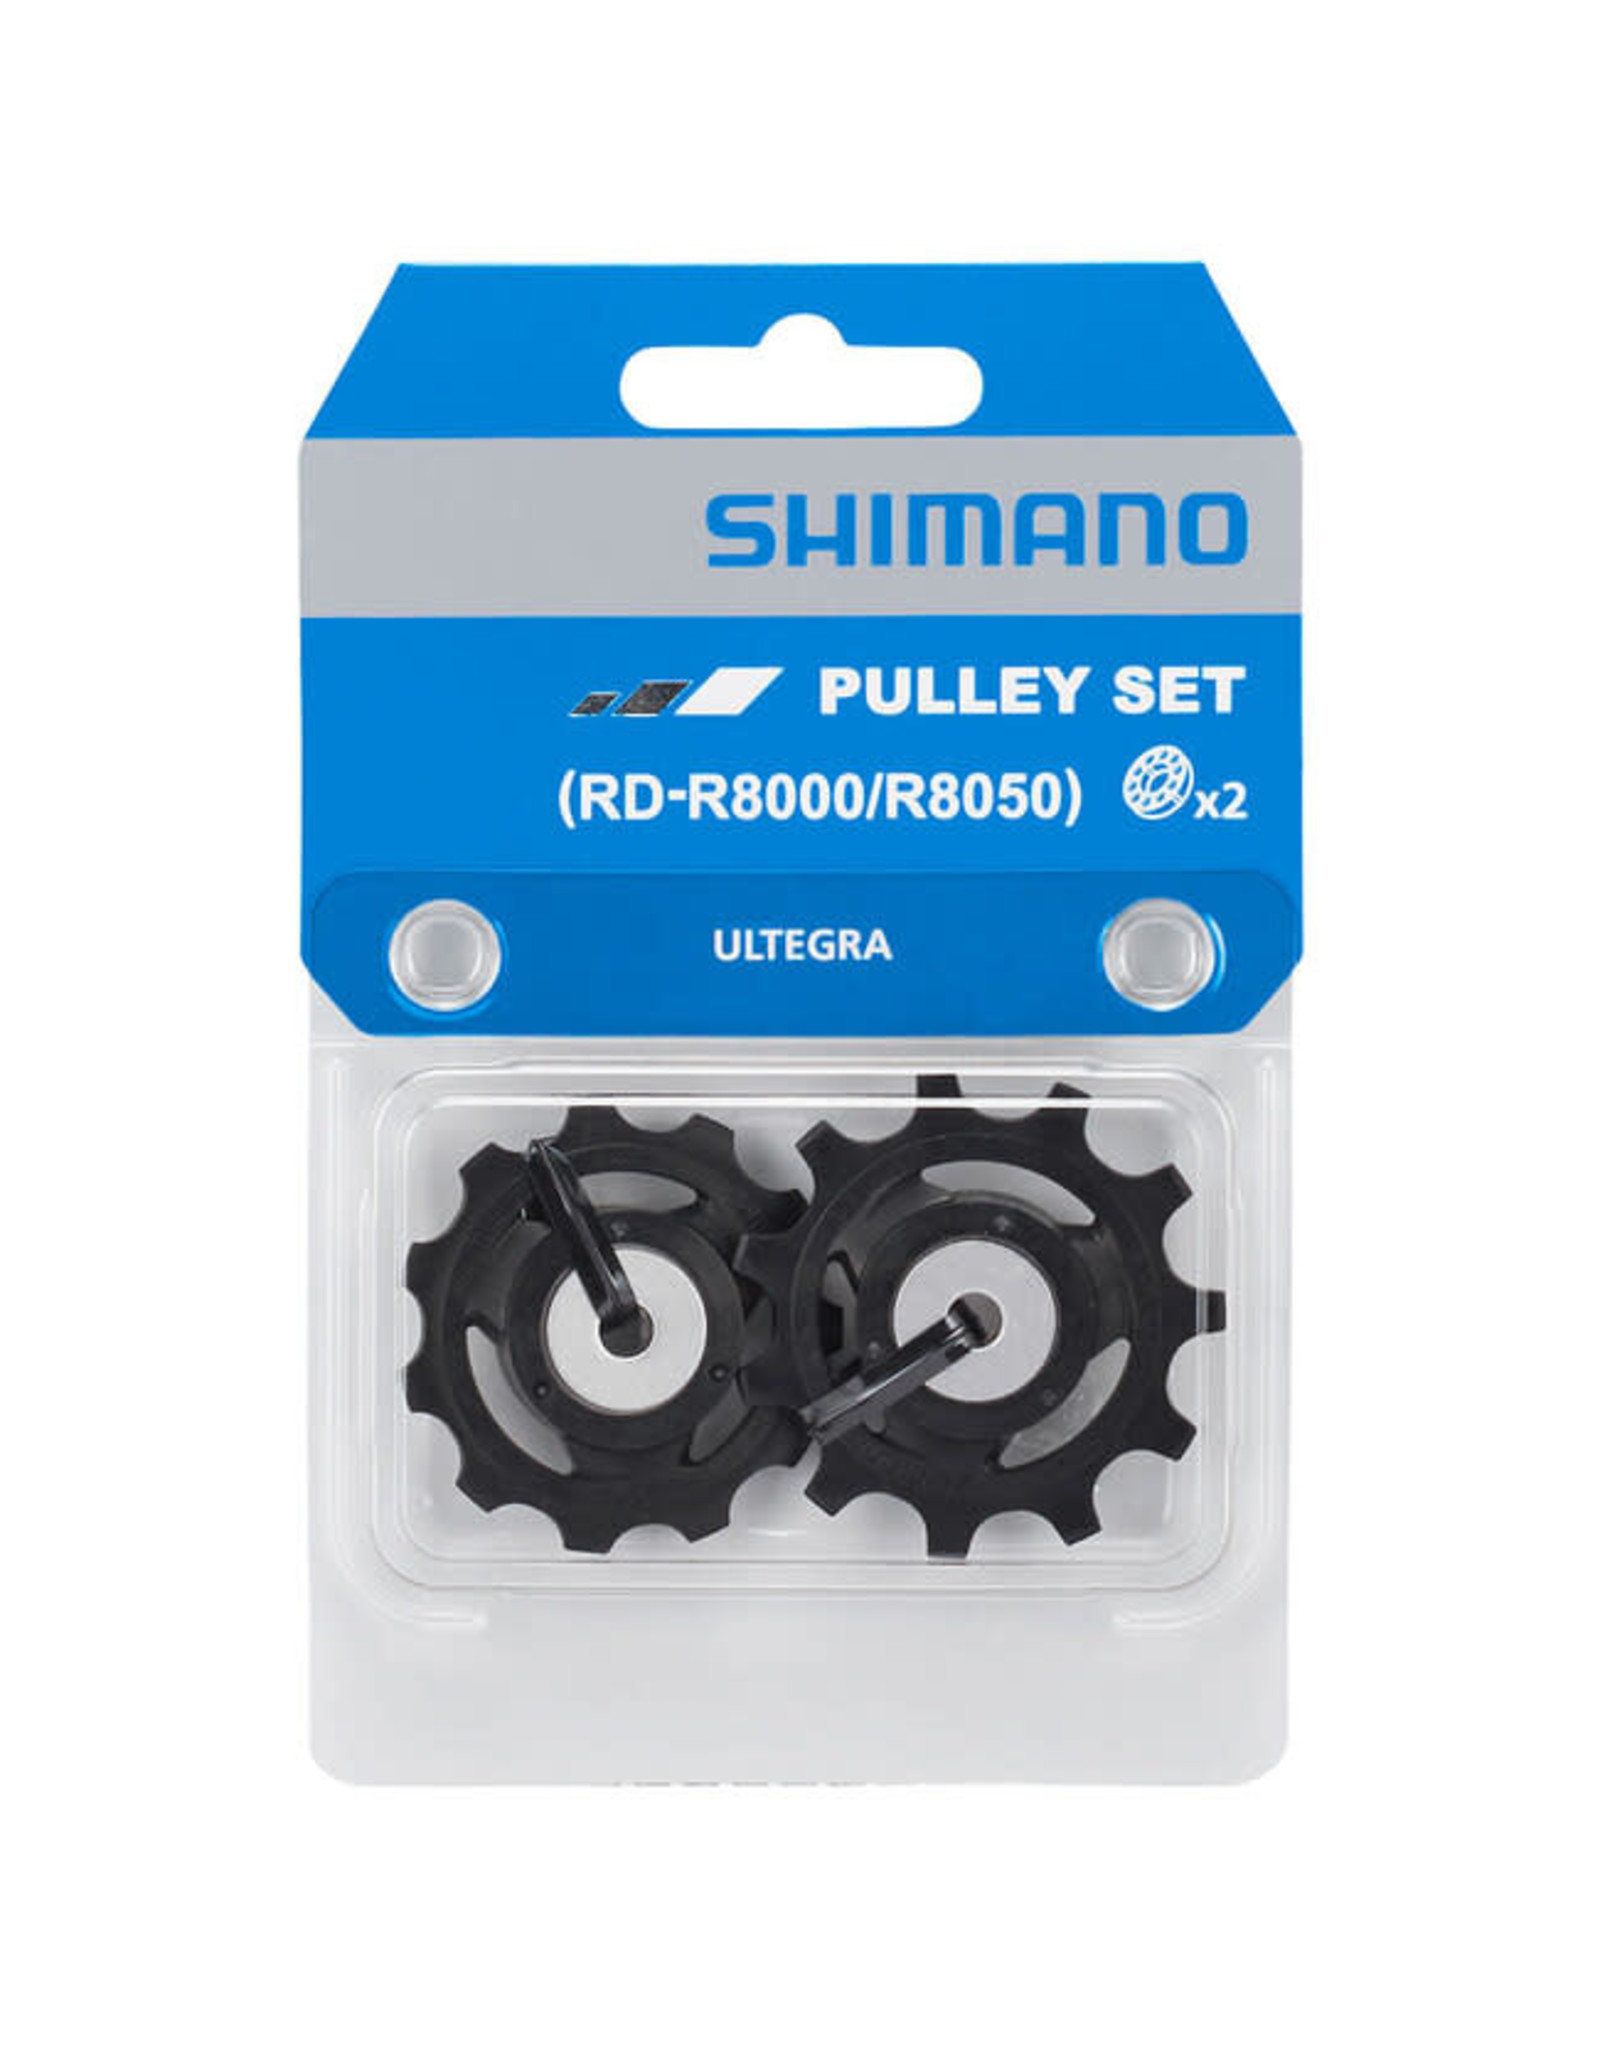 Shimano Shimano Ultegra RD-R8000 11-Speed Rear Derailleur Pulley Set